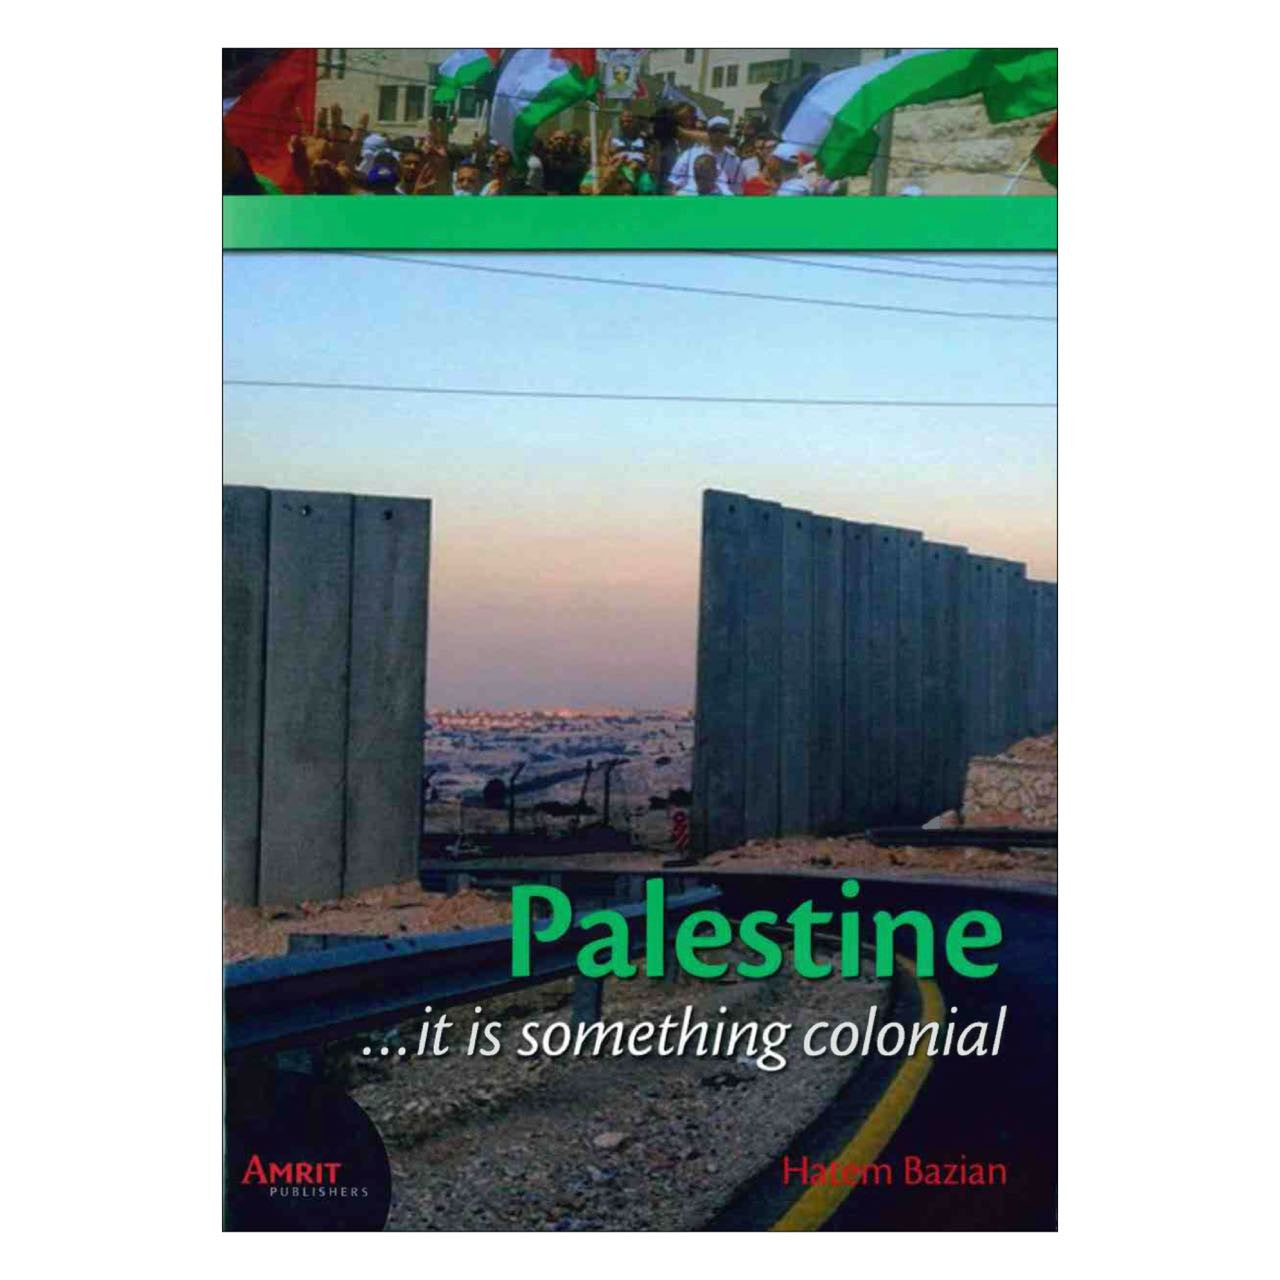 Palestine ....it is something colonial